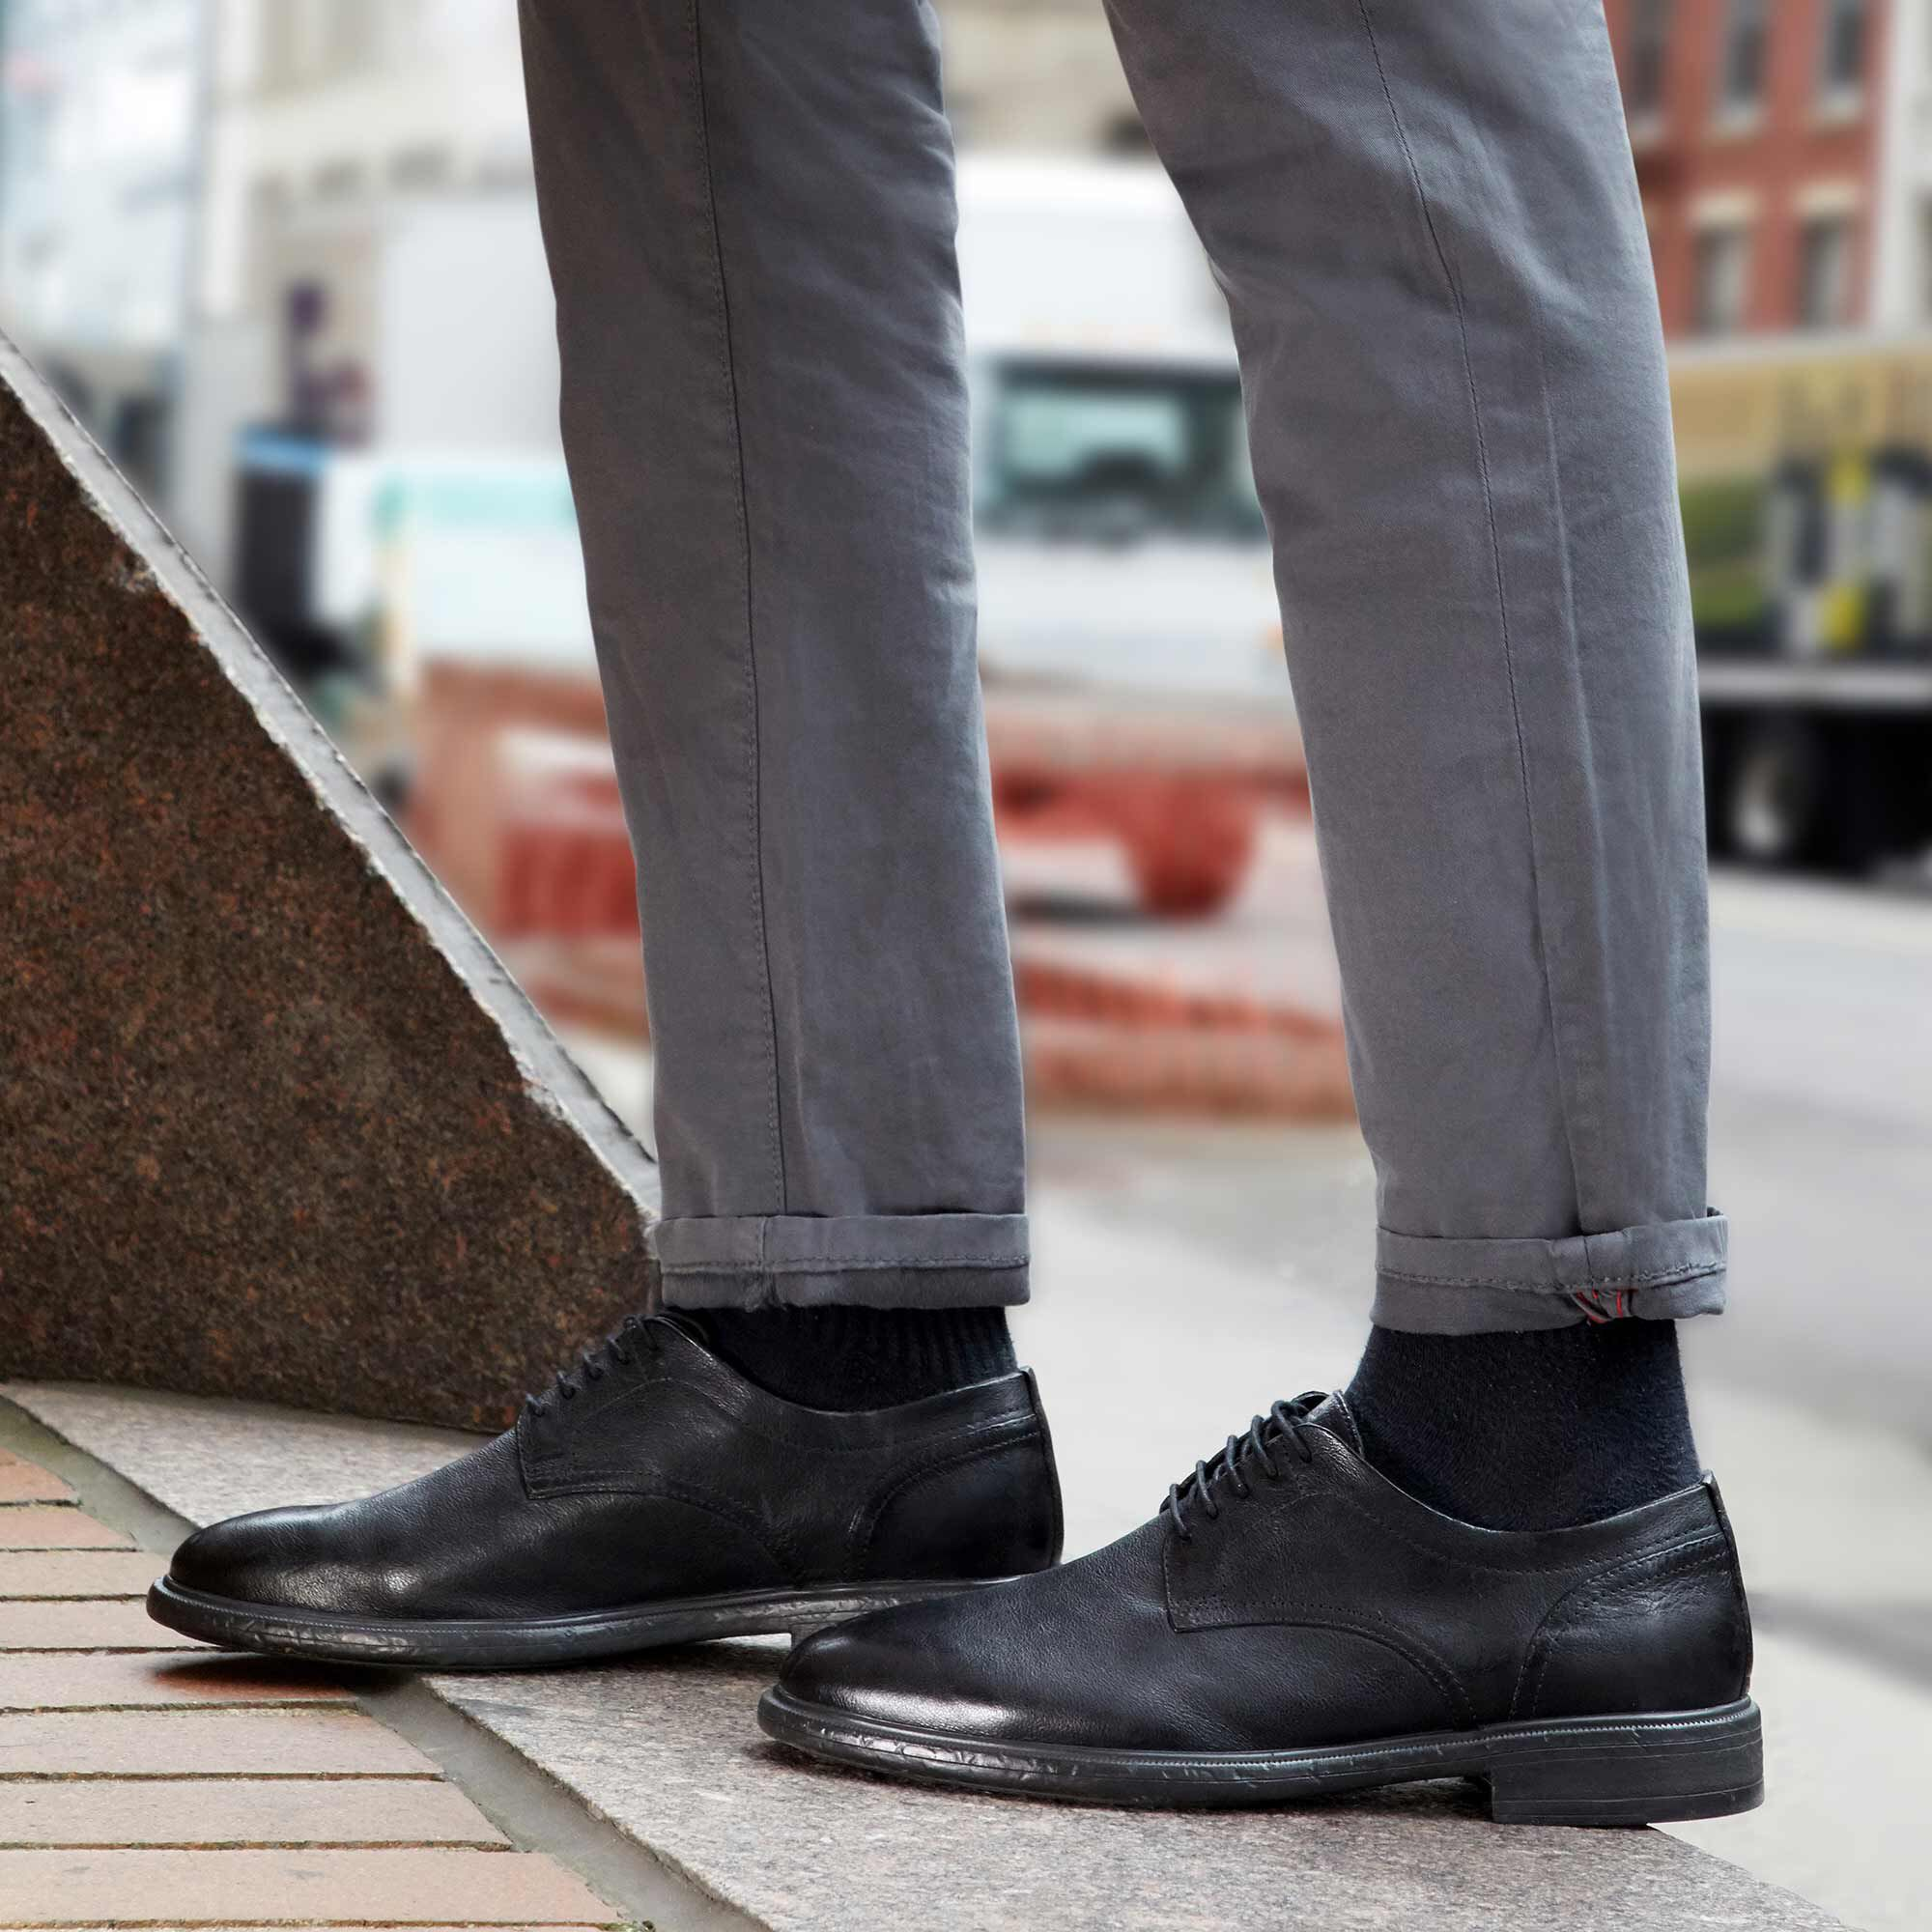 Geox TERENCE Man: Black Shoes   Geox ® FW 1920